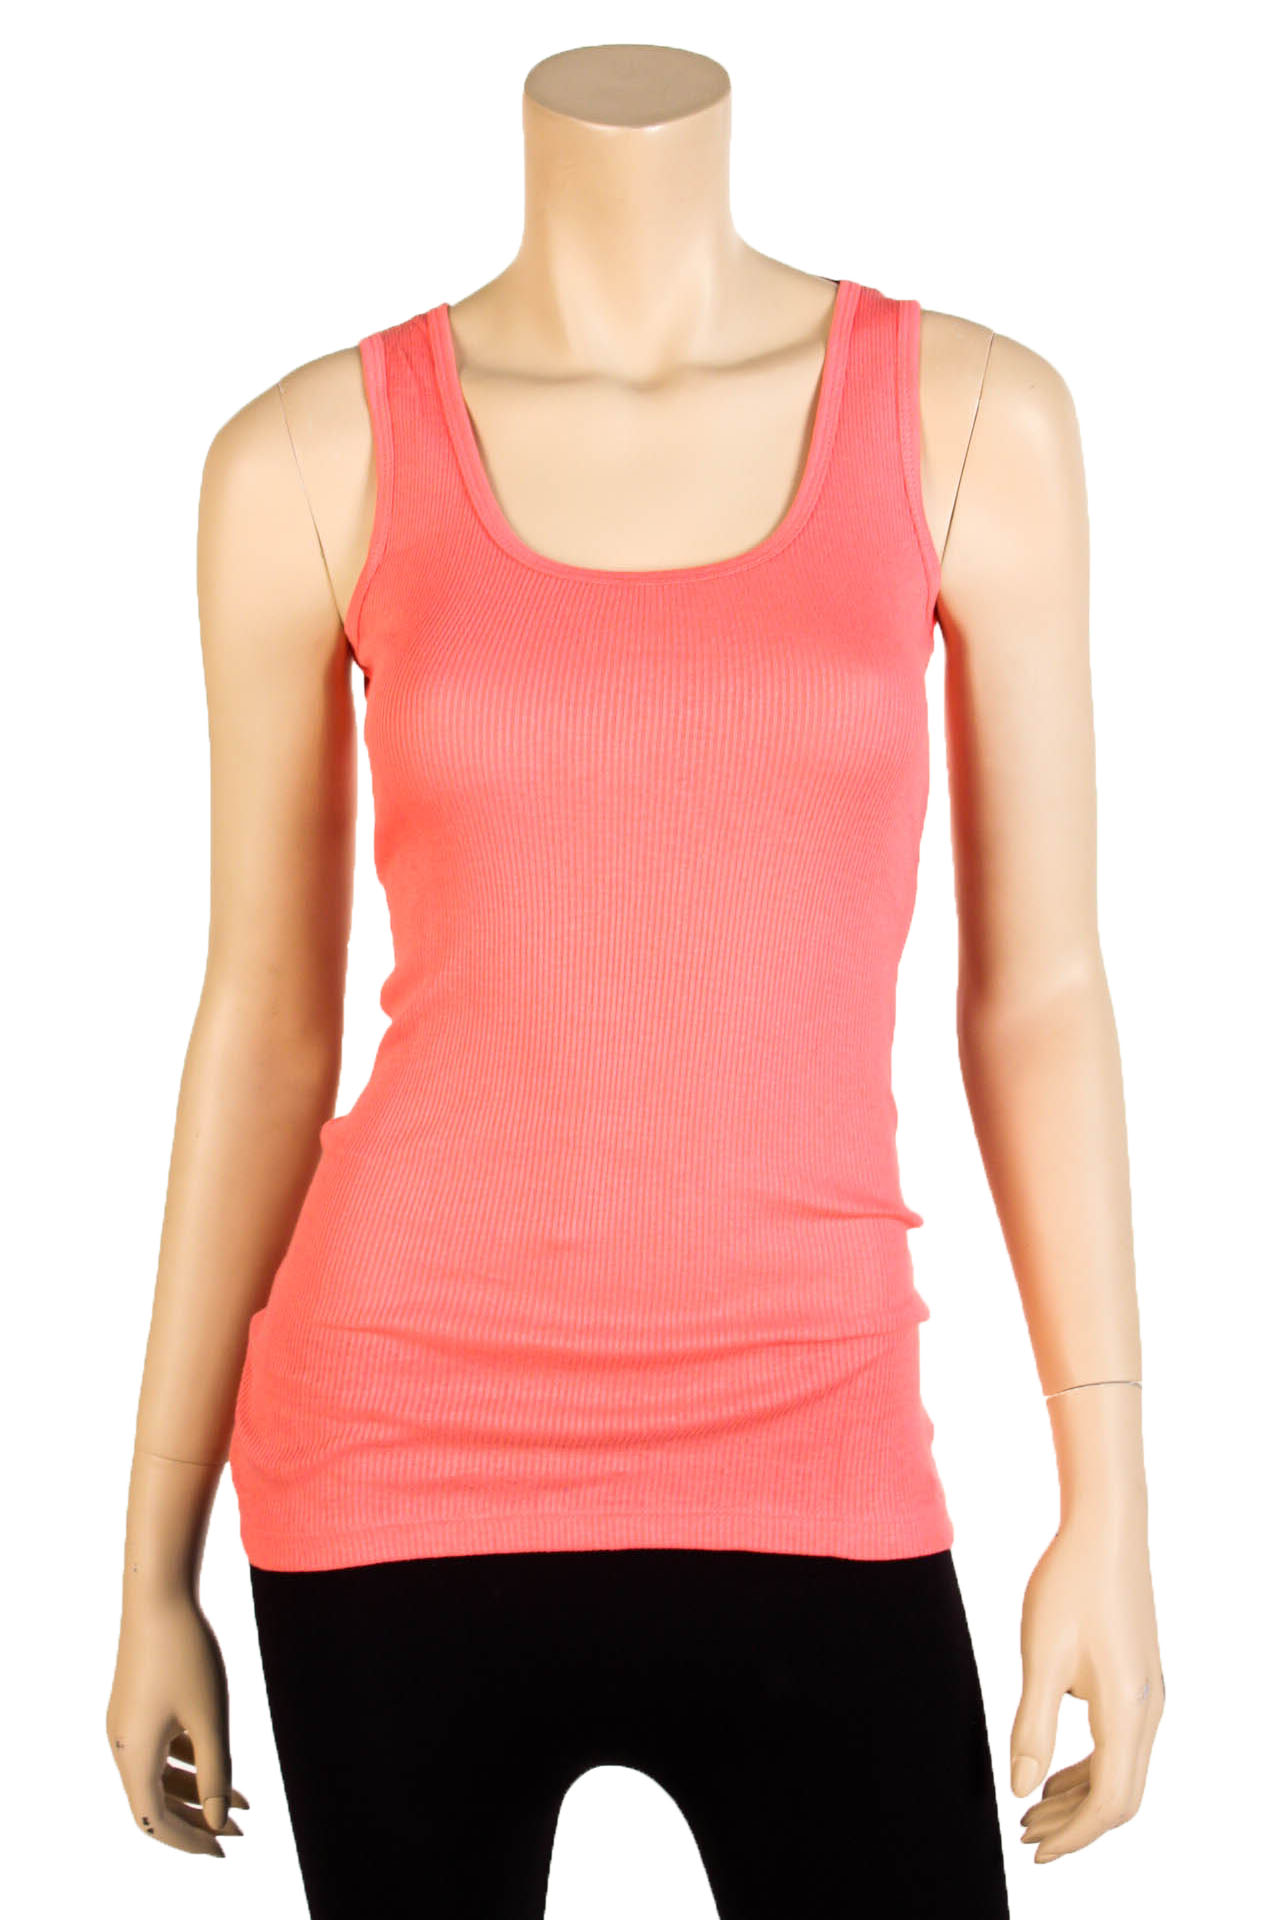 Women's Tank Tops womens-tank-top-100-cotton-heavy-weight-ribbed- MGDUWCH